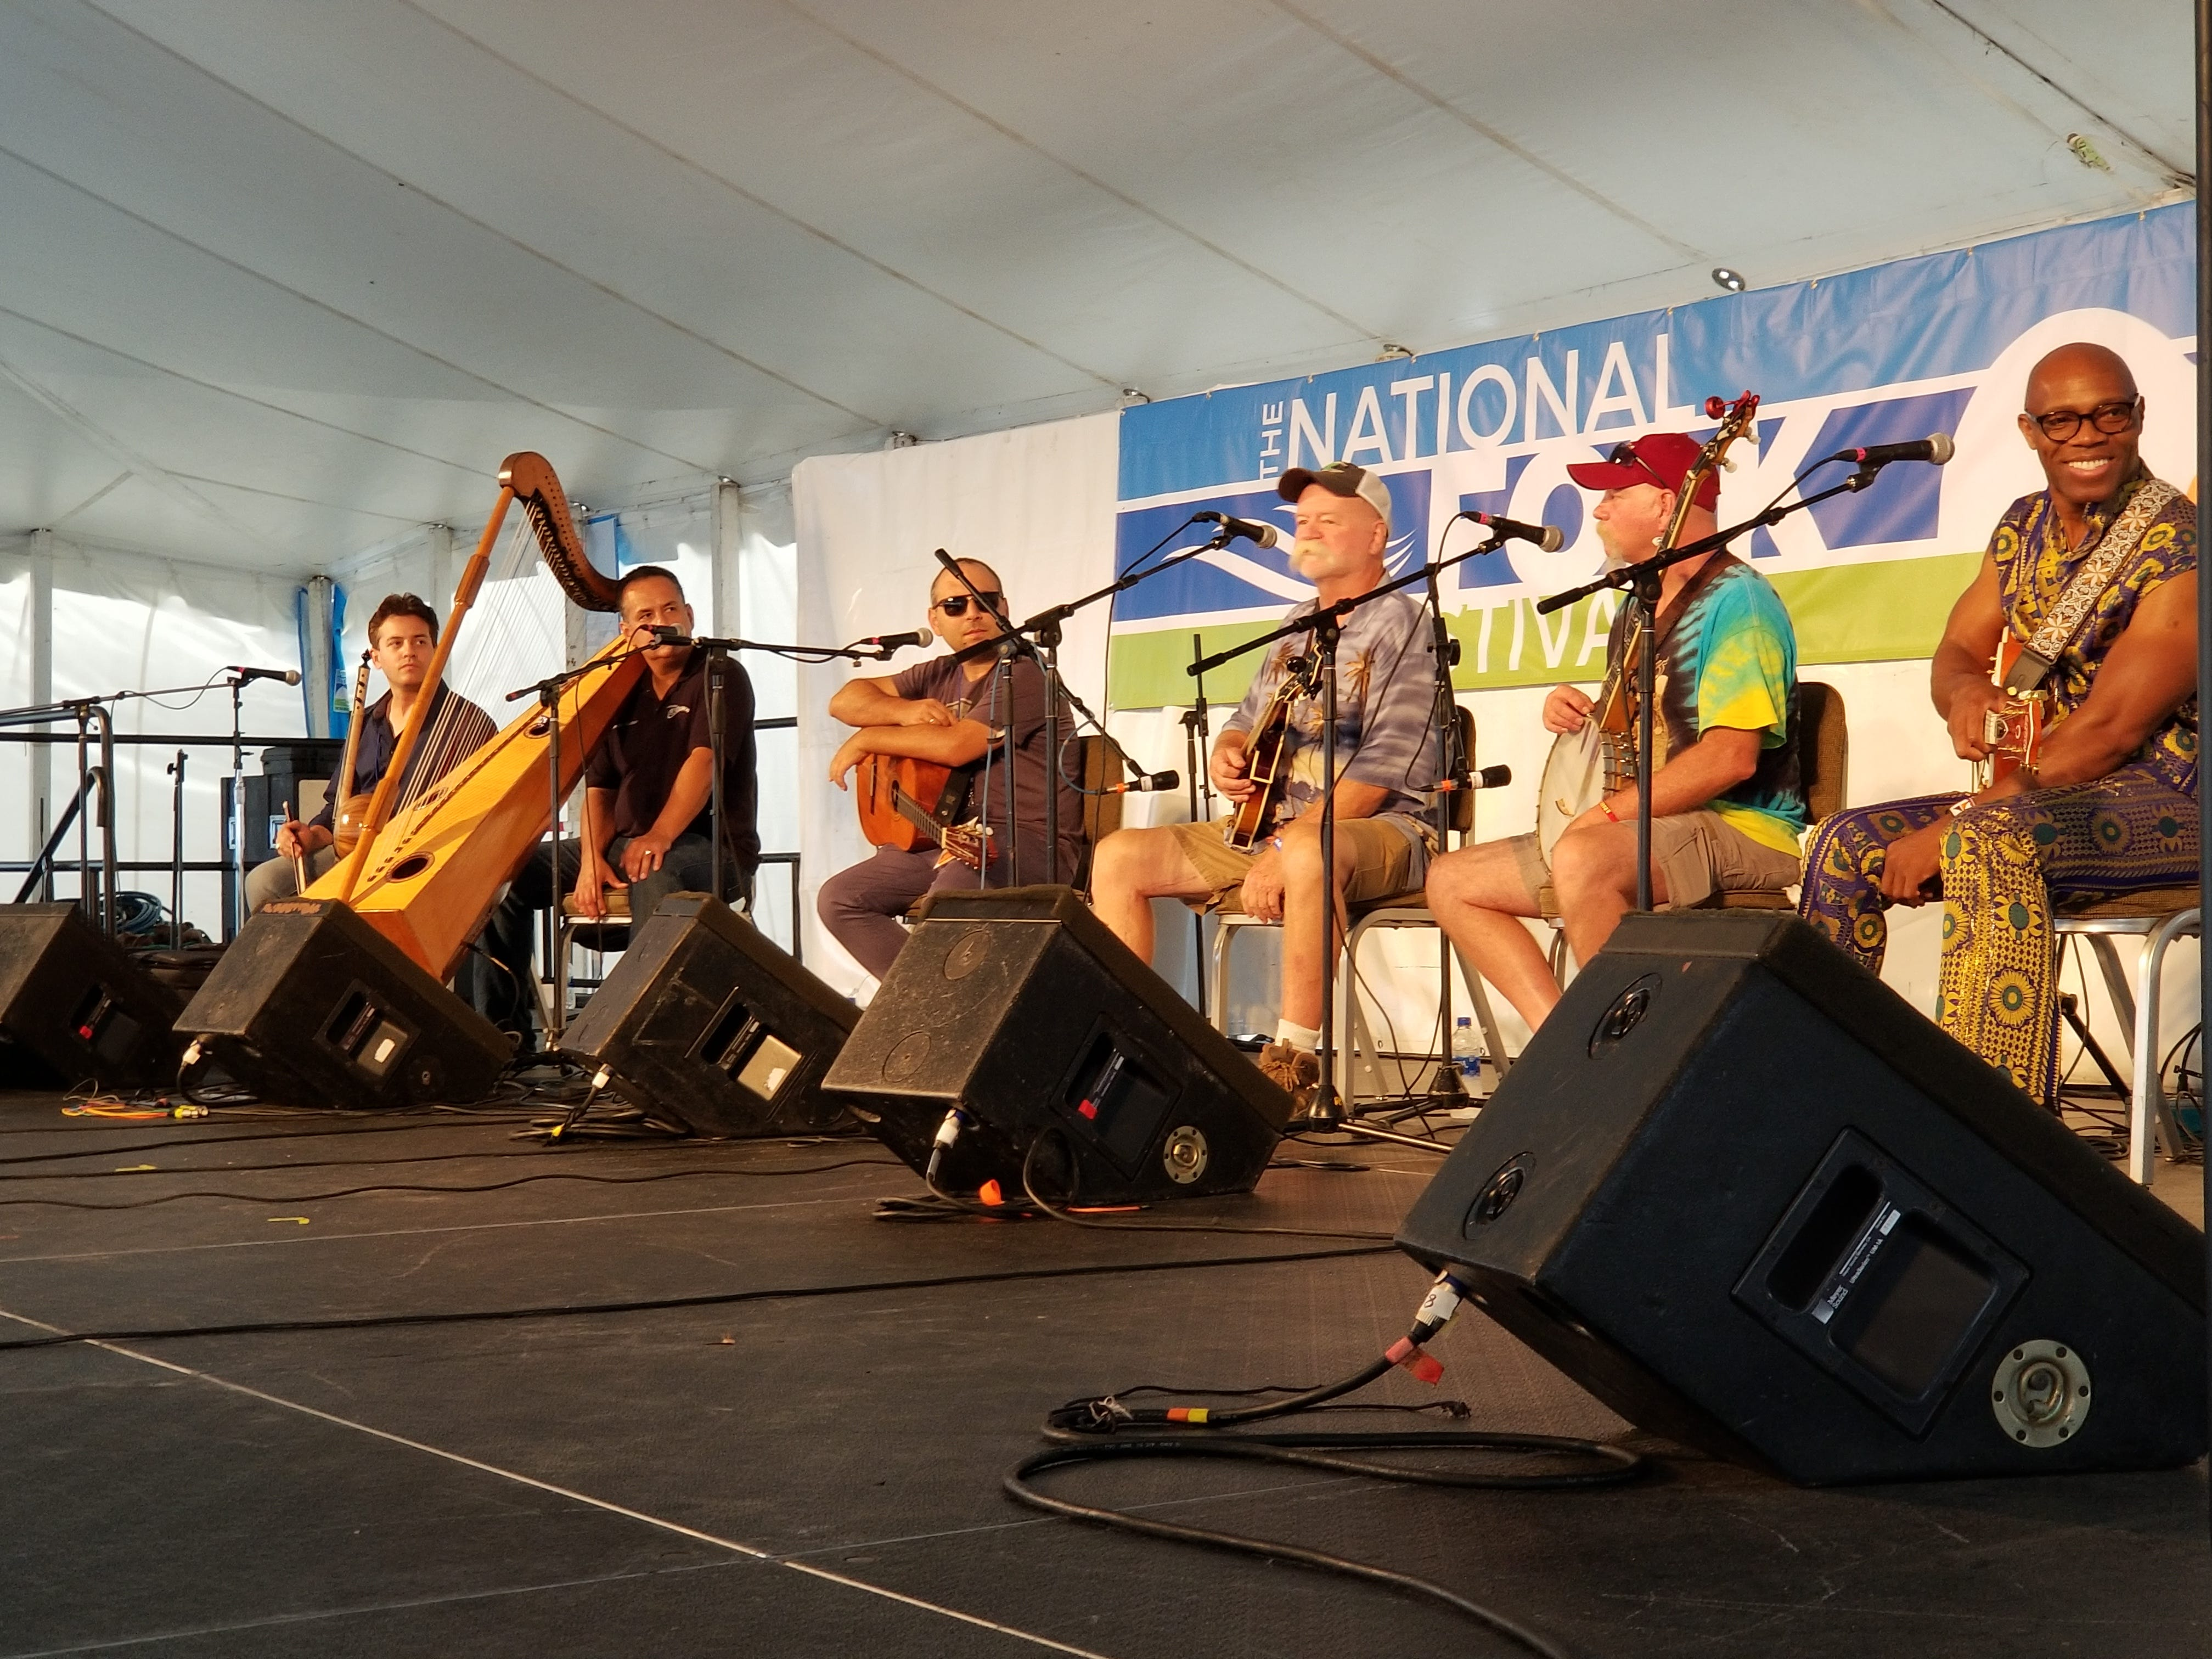 Performers from several groups enjoyed an impromptu jam session at the Richard A. Henson Stage at the National Folk Festival in Salisbury, Maryland on Sept. 8, 2018.